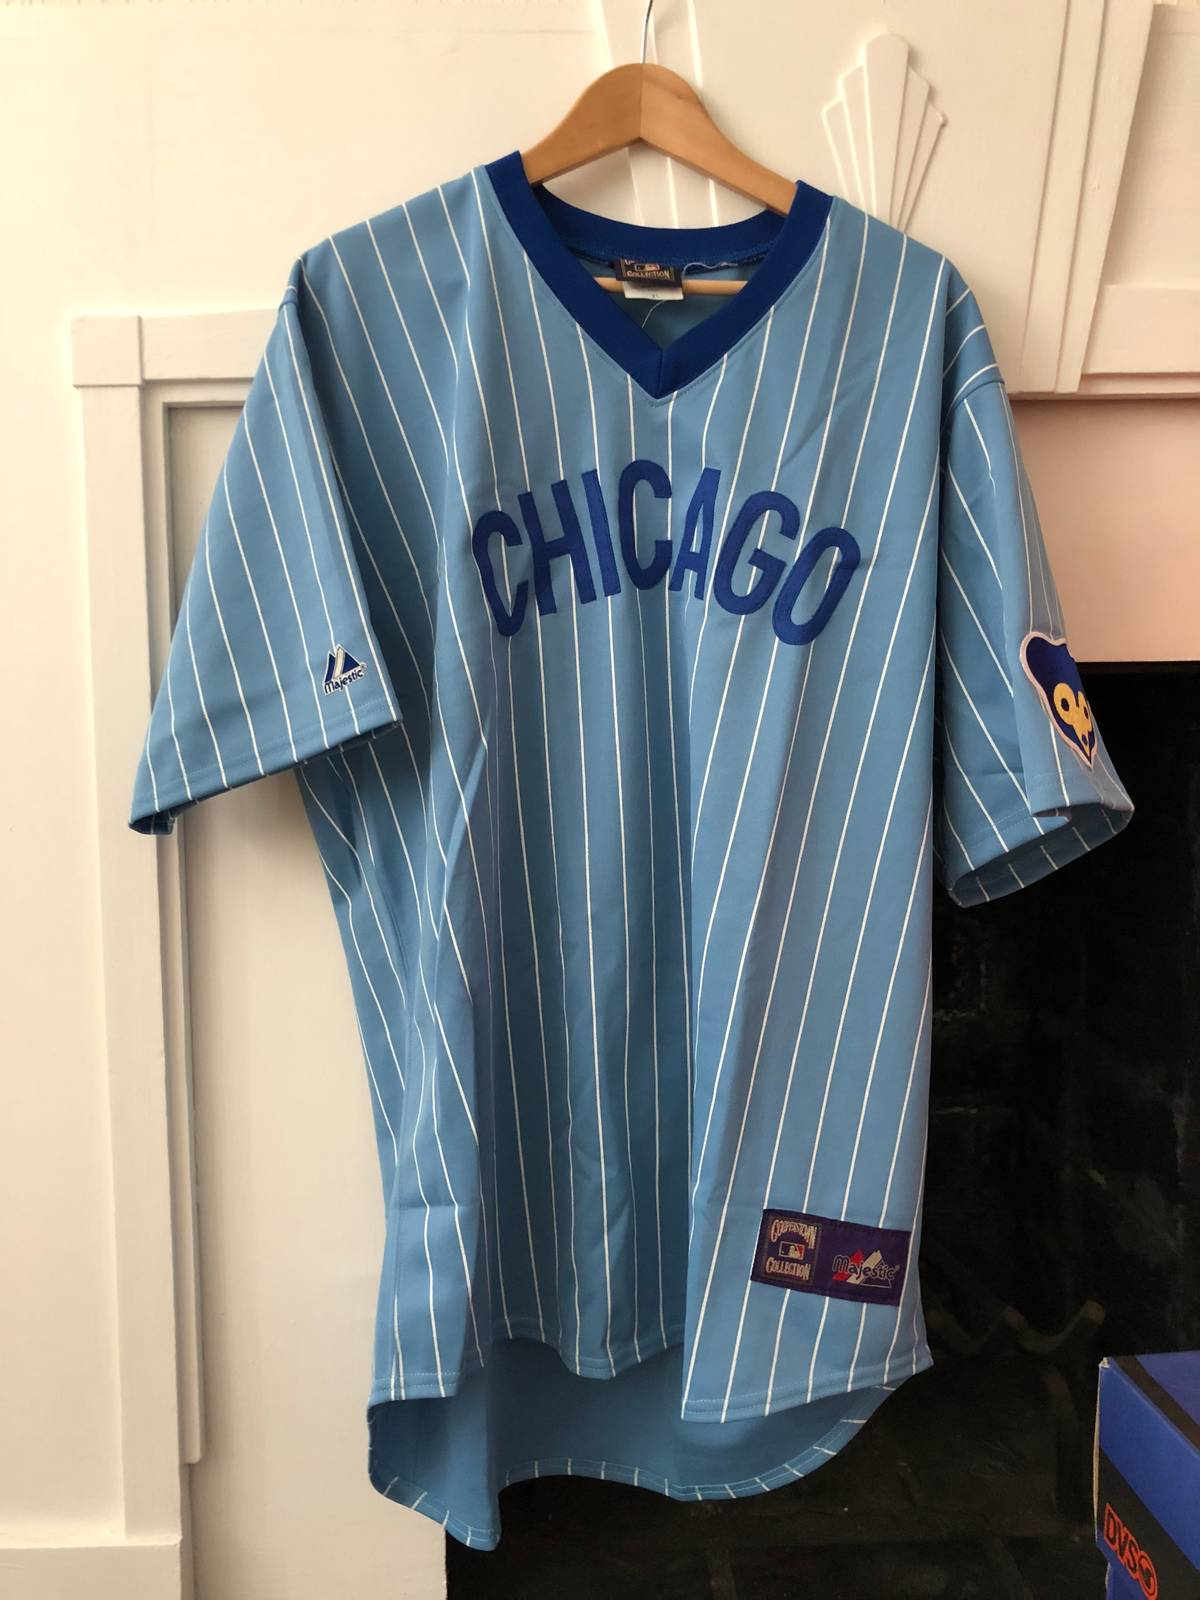 timeless design 4c50d 7f06d Mlb × Majestic × Vintage Chicago Cubs Cooperstown Throwback Jersey Size Xl  $60